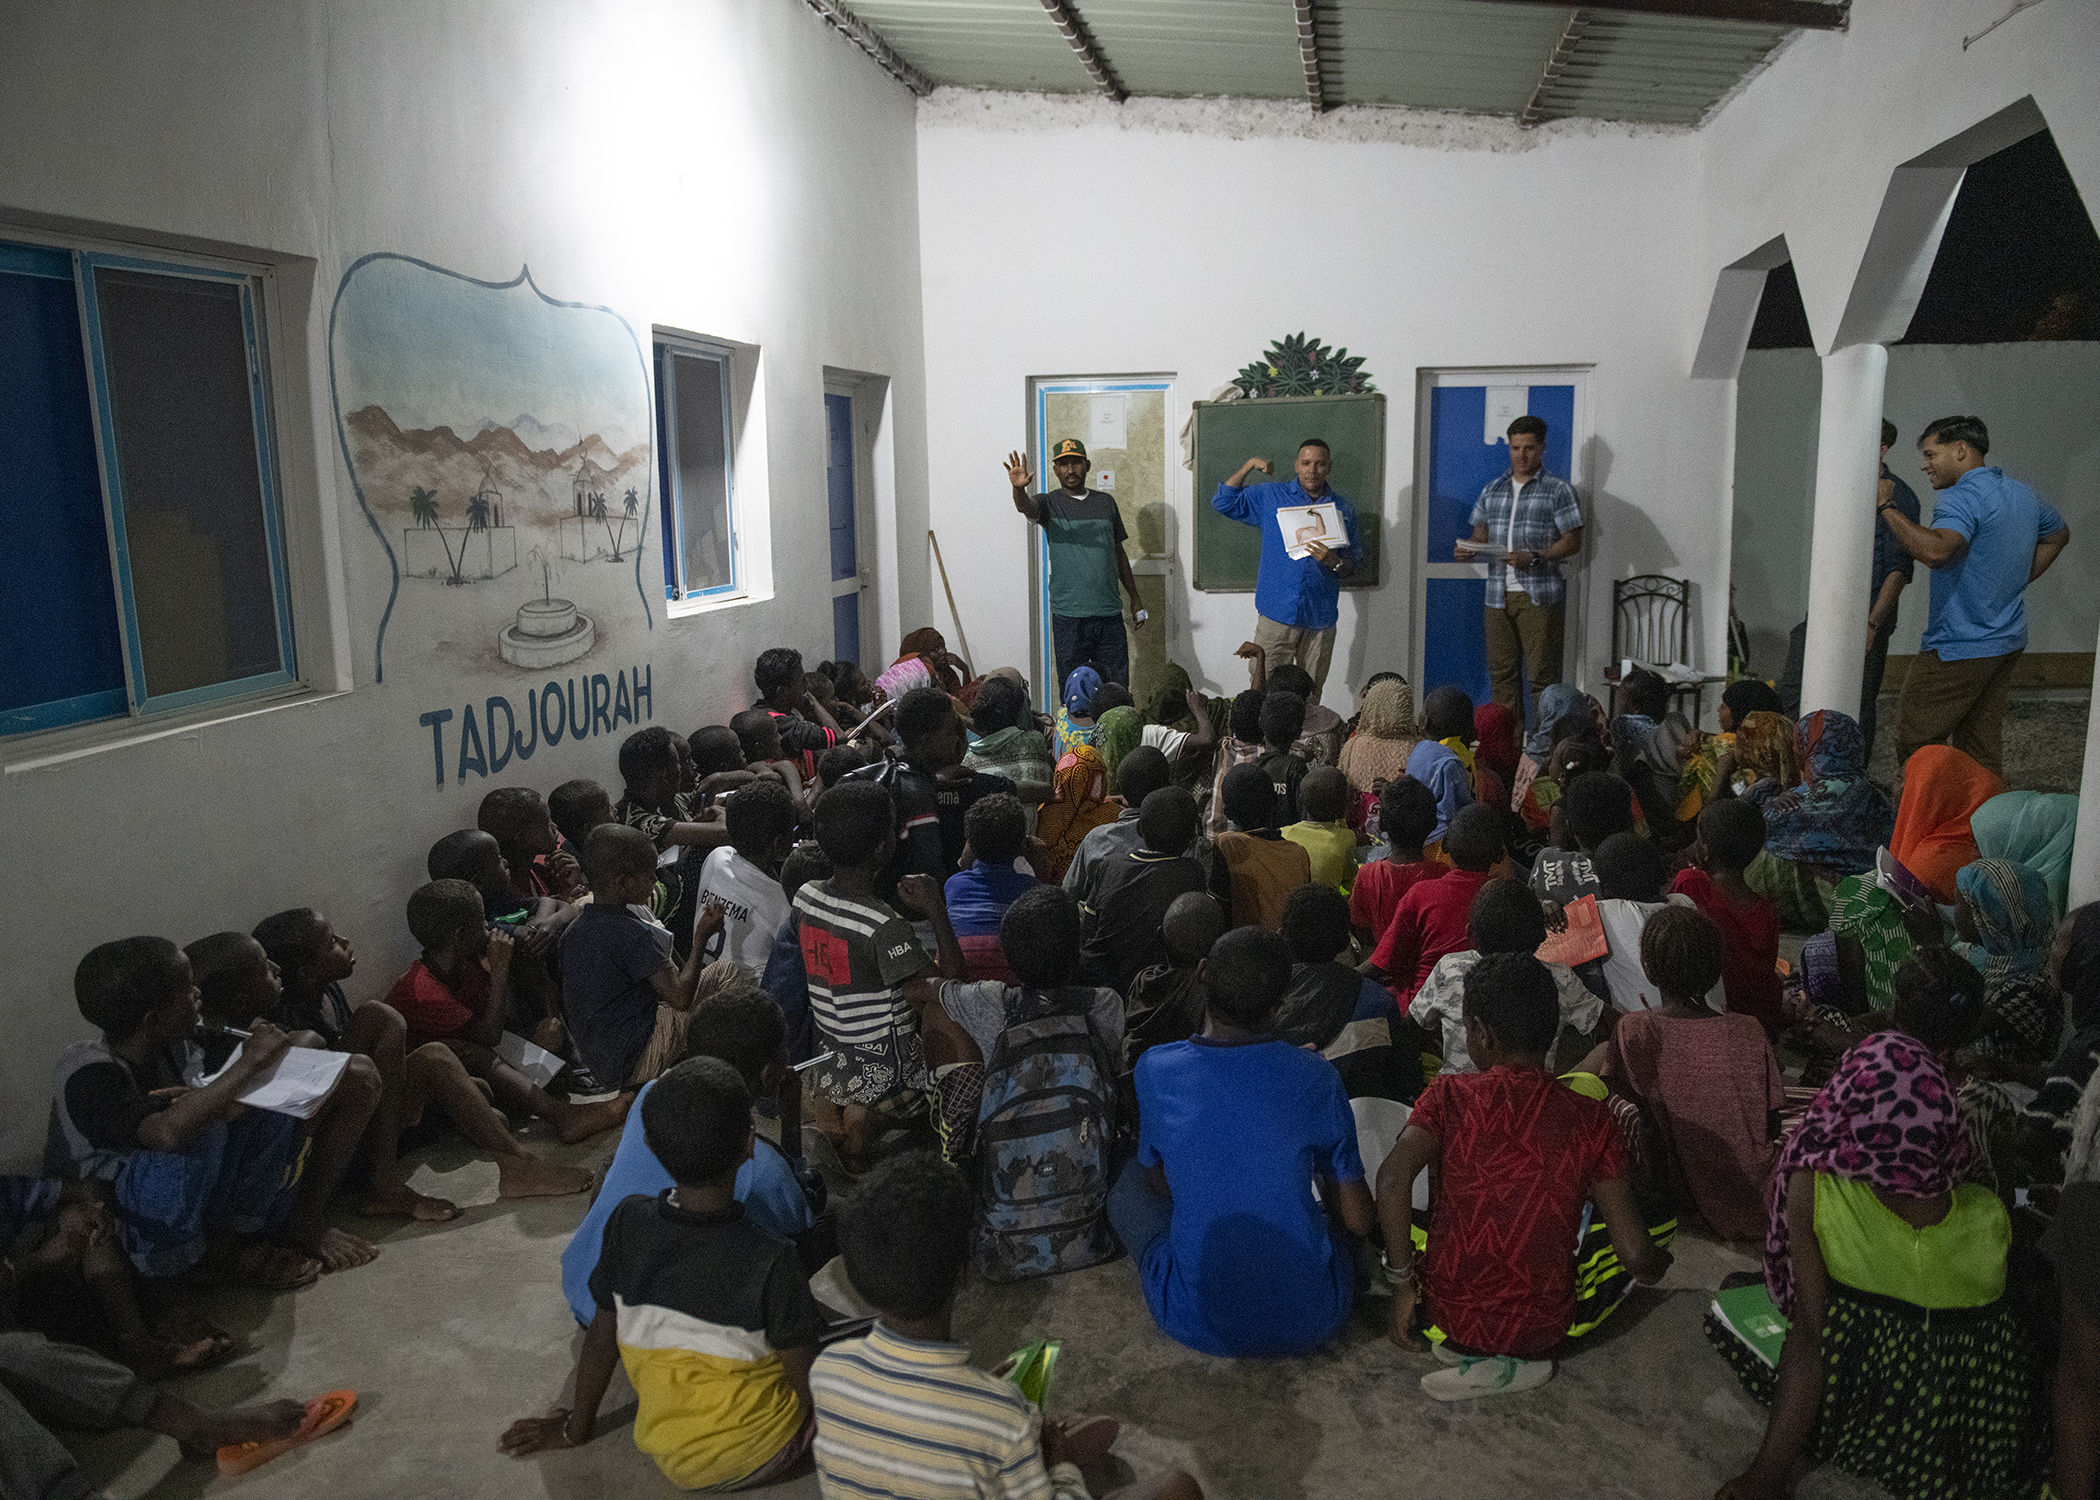 Children participate during an English Discussion Group led by U.S. Army Soldiers from the 404th Civil Affairs Battalion, assigned to Combined Joint Task Force-Horn of Africa in Tadjourah, Djibouti, Feb. 12, 2019. More than 90 Djiboutian youth and adults attended the group where students develop practical linguistic and rhetorical skills through conversation with English-speaking U.S. service members. (U.S. Air Force photo by Tech. Sgt. Shawn Nickel)